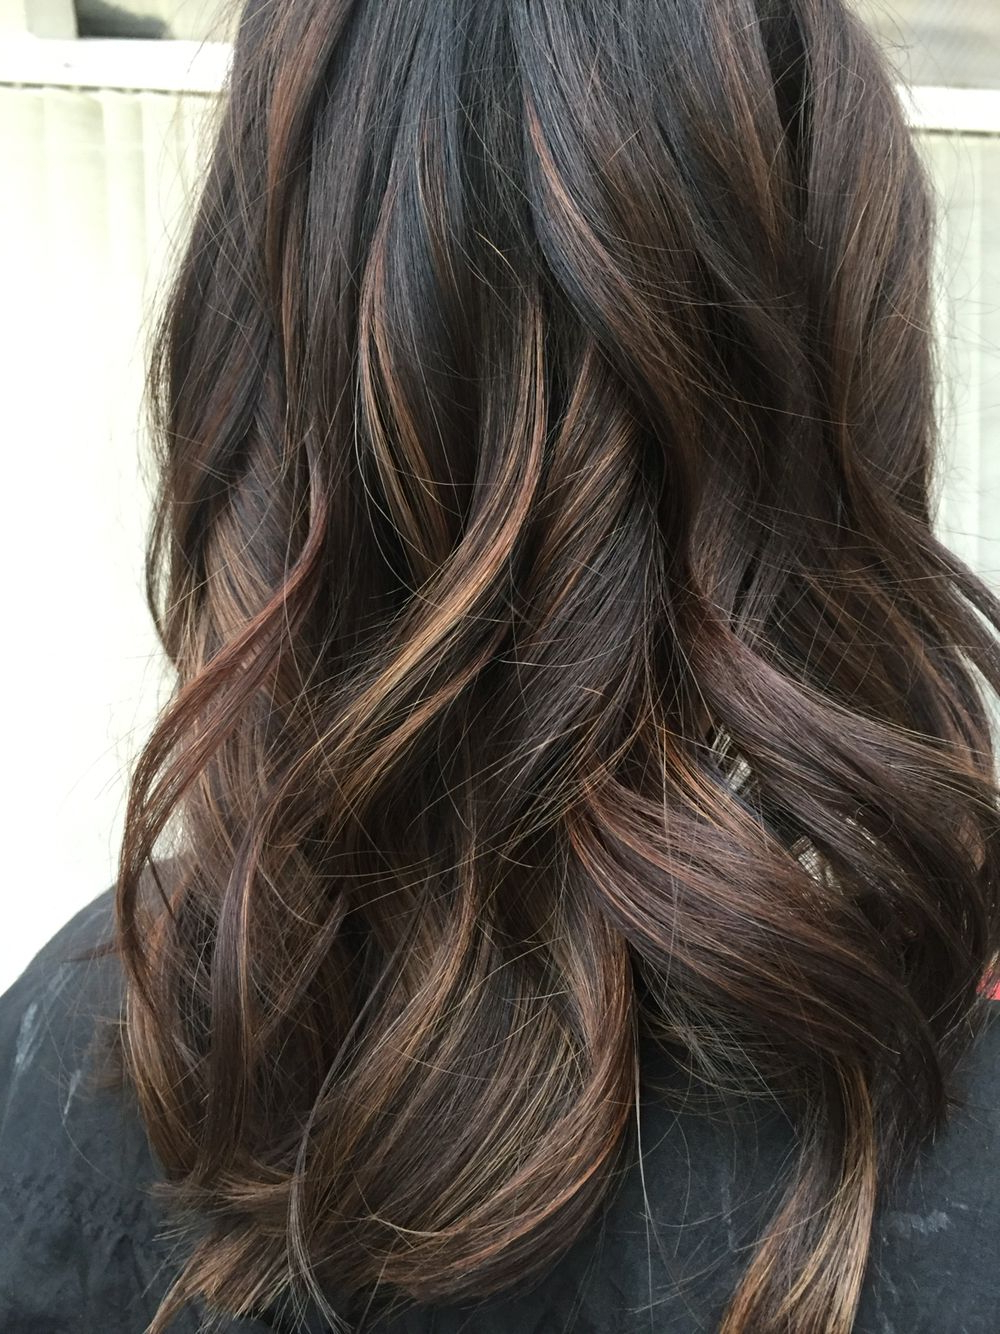 Dark Brunette Balayage With Caramel | Hair 's | Pinterest | Balayage For Curly Dark Brown Bob Hairstyles With Partial Balayage (Gallery 1 of 25)